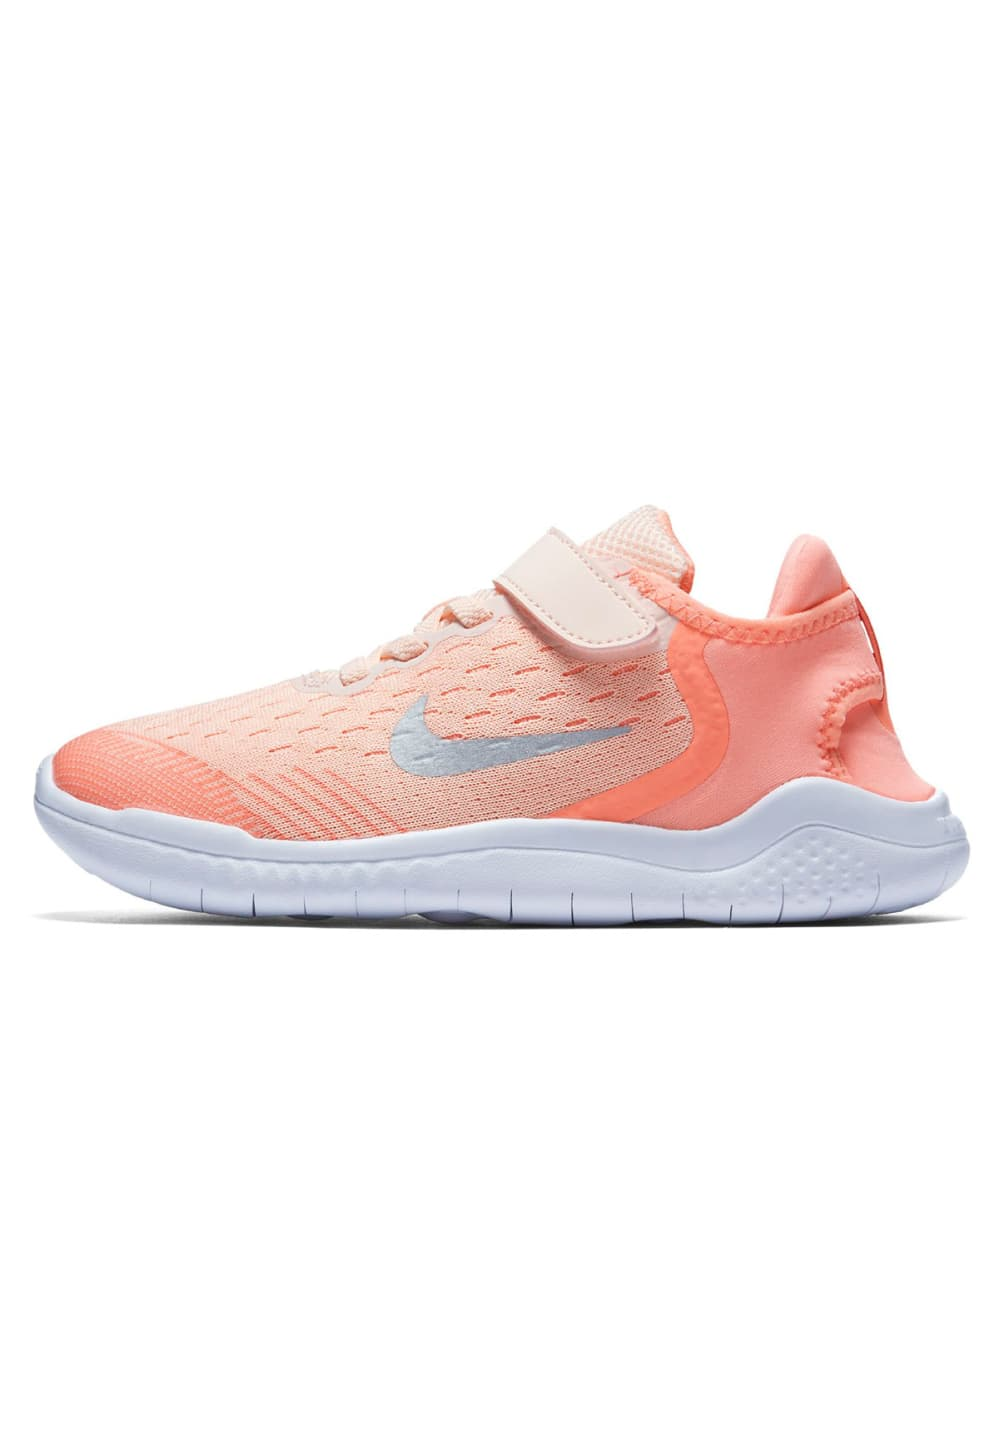 f8b338a5accb85 ... Nike Free RN 2018 - Running shoes - Orange. Back to Overview. 1  2  3.  Previous